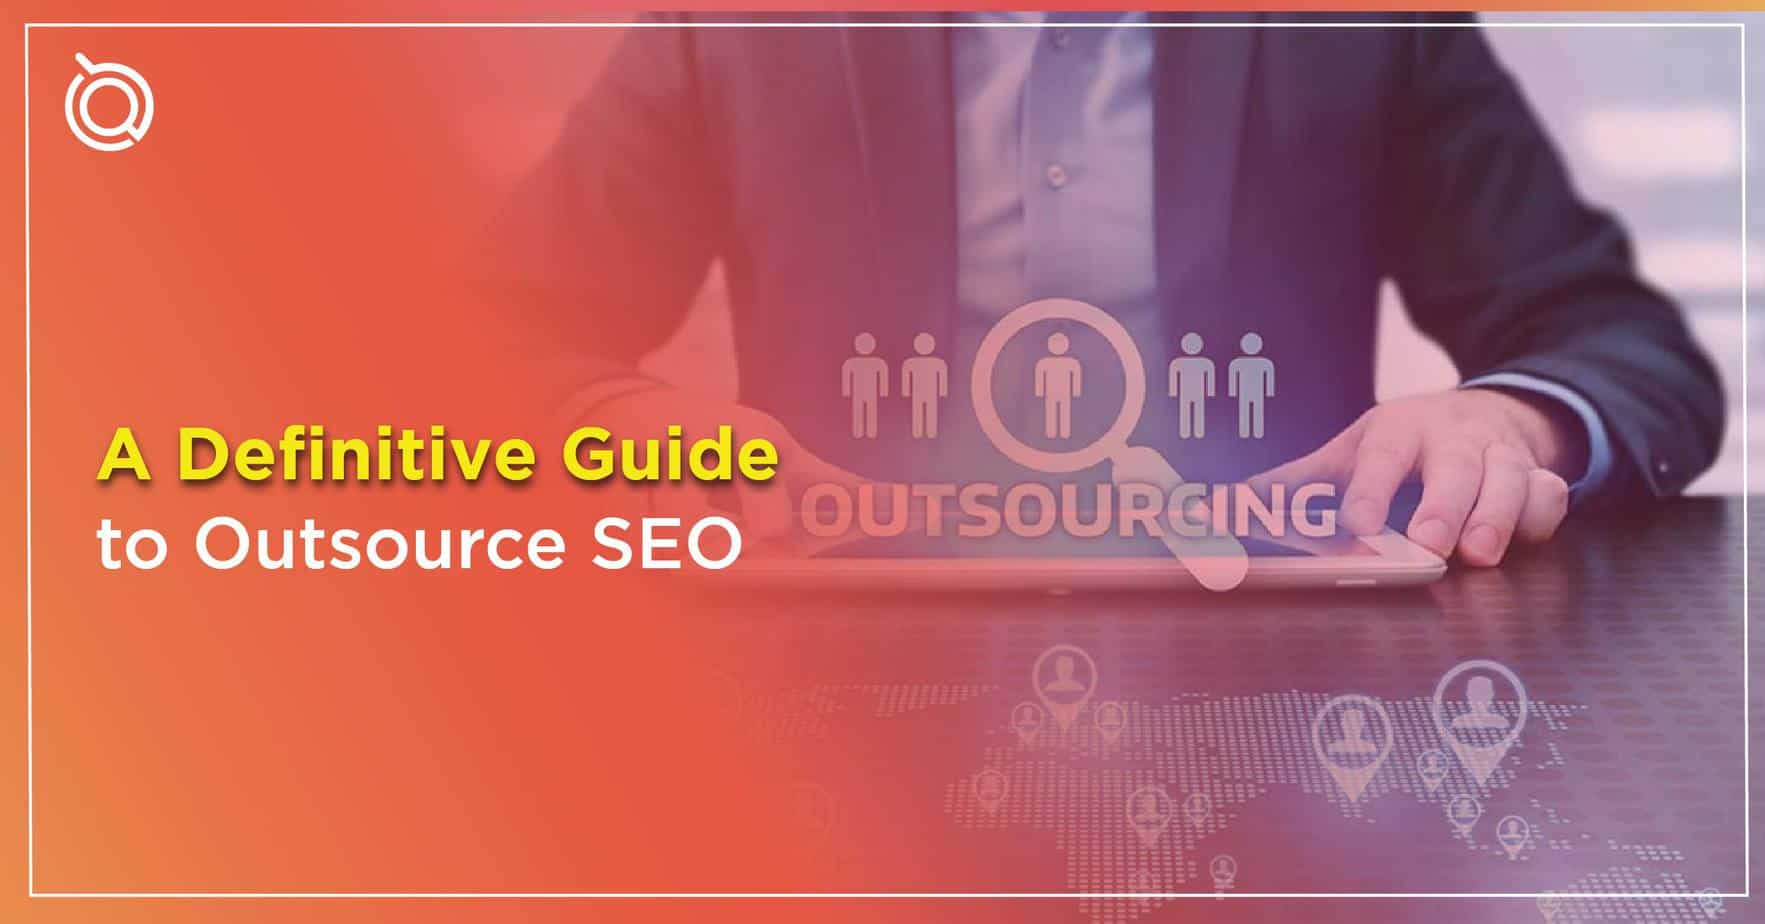 A Definitive Guide to Outsource SEO by One Search Pro Top Leading SEO Agency in Malaysia